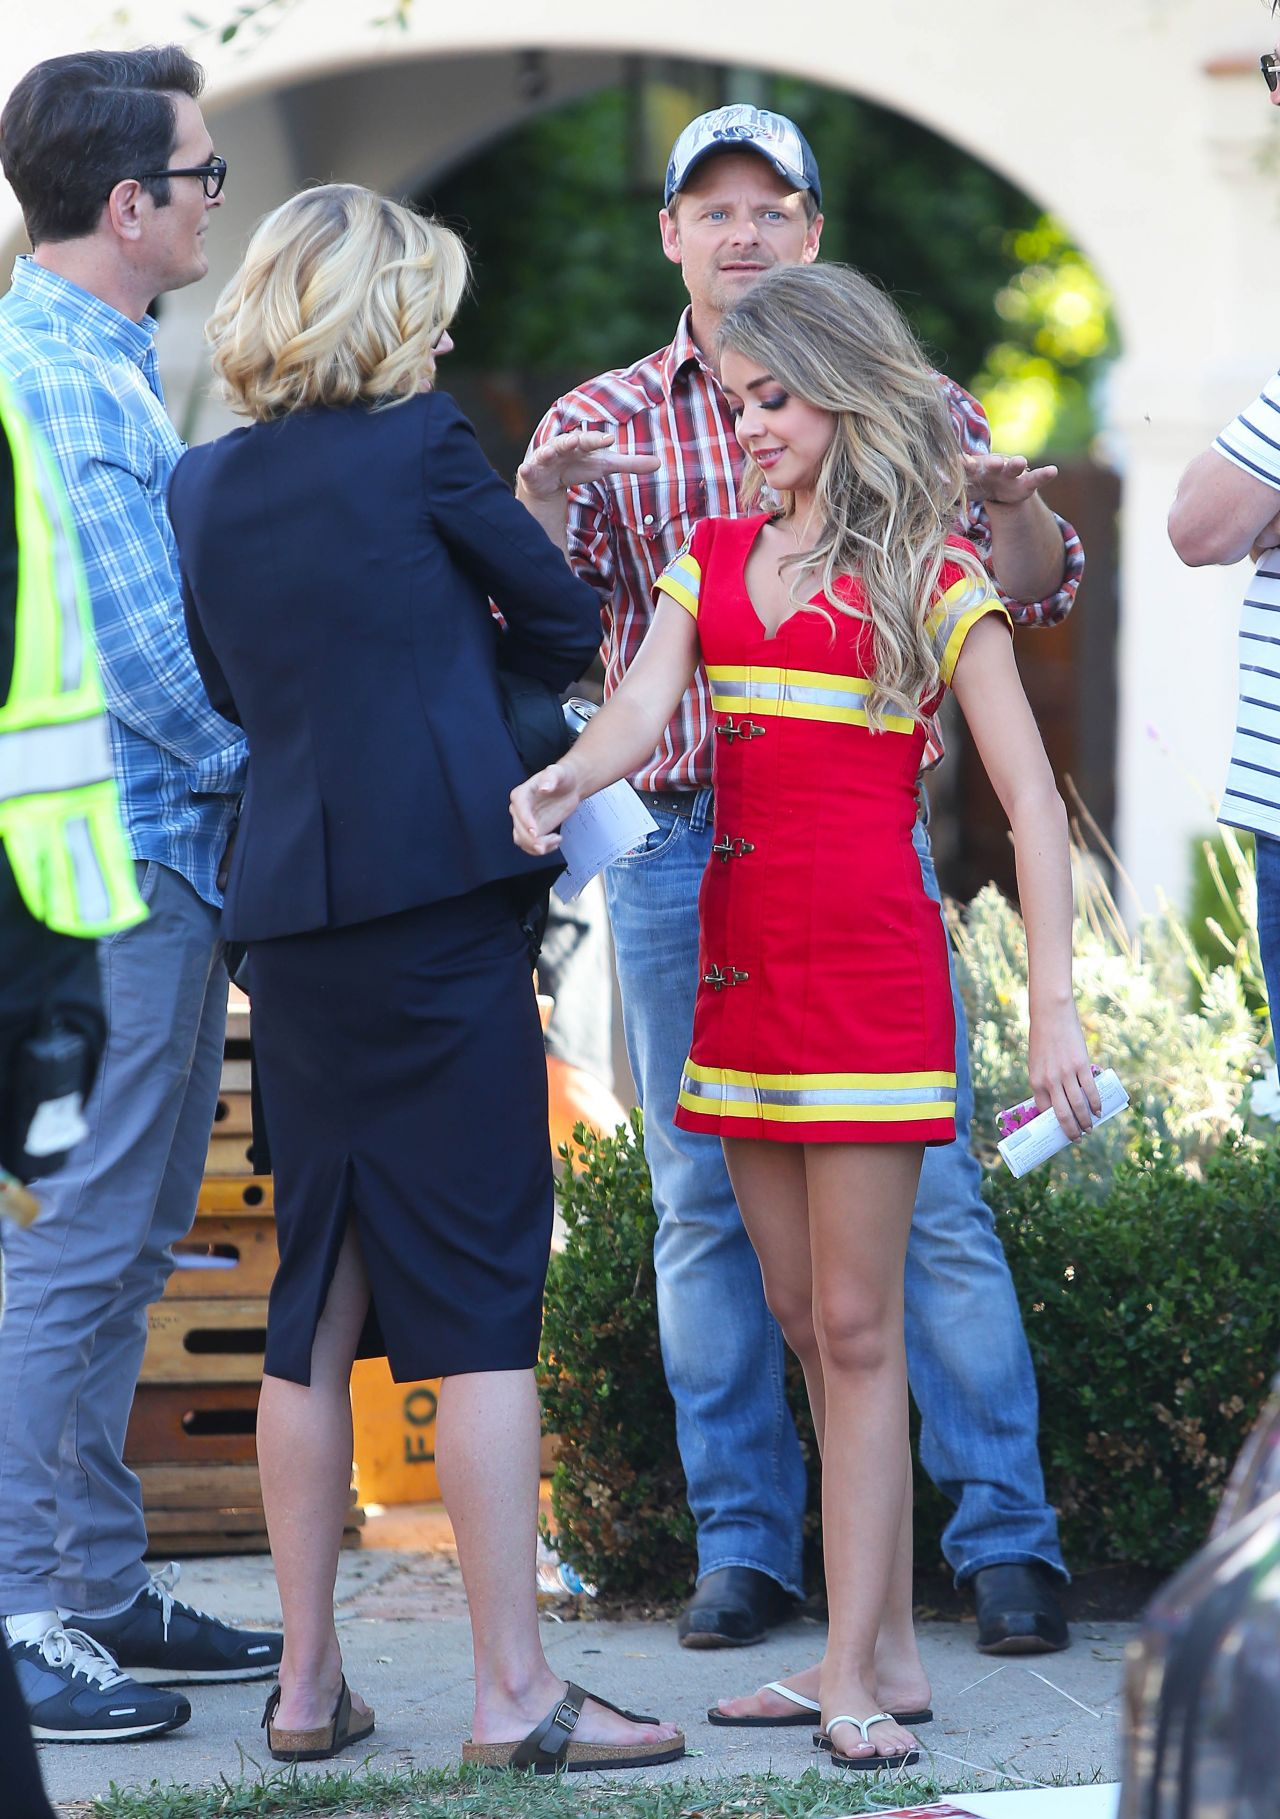 Sarah Hyland - Modern Family Set Photos in LA - September 2014